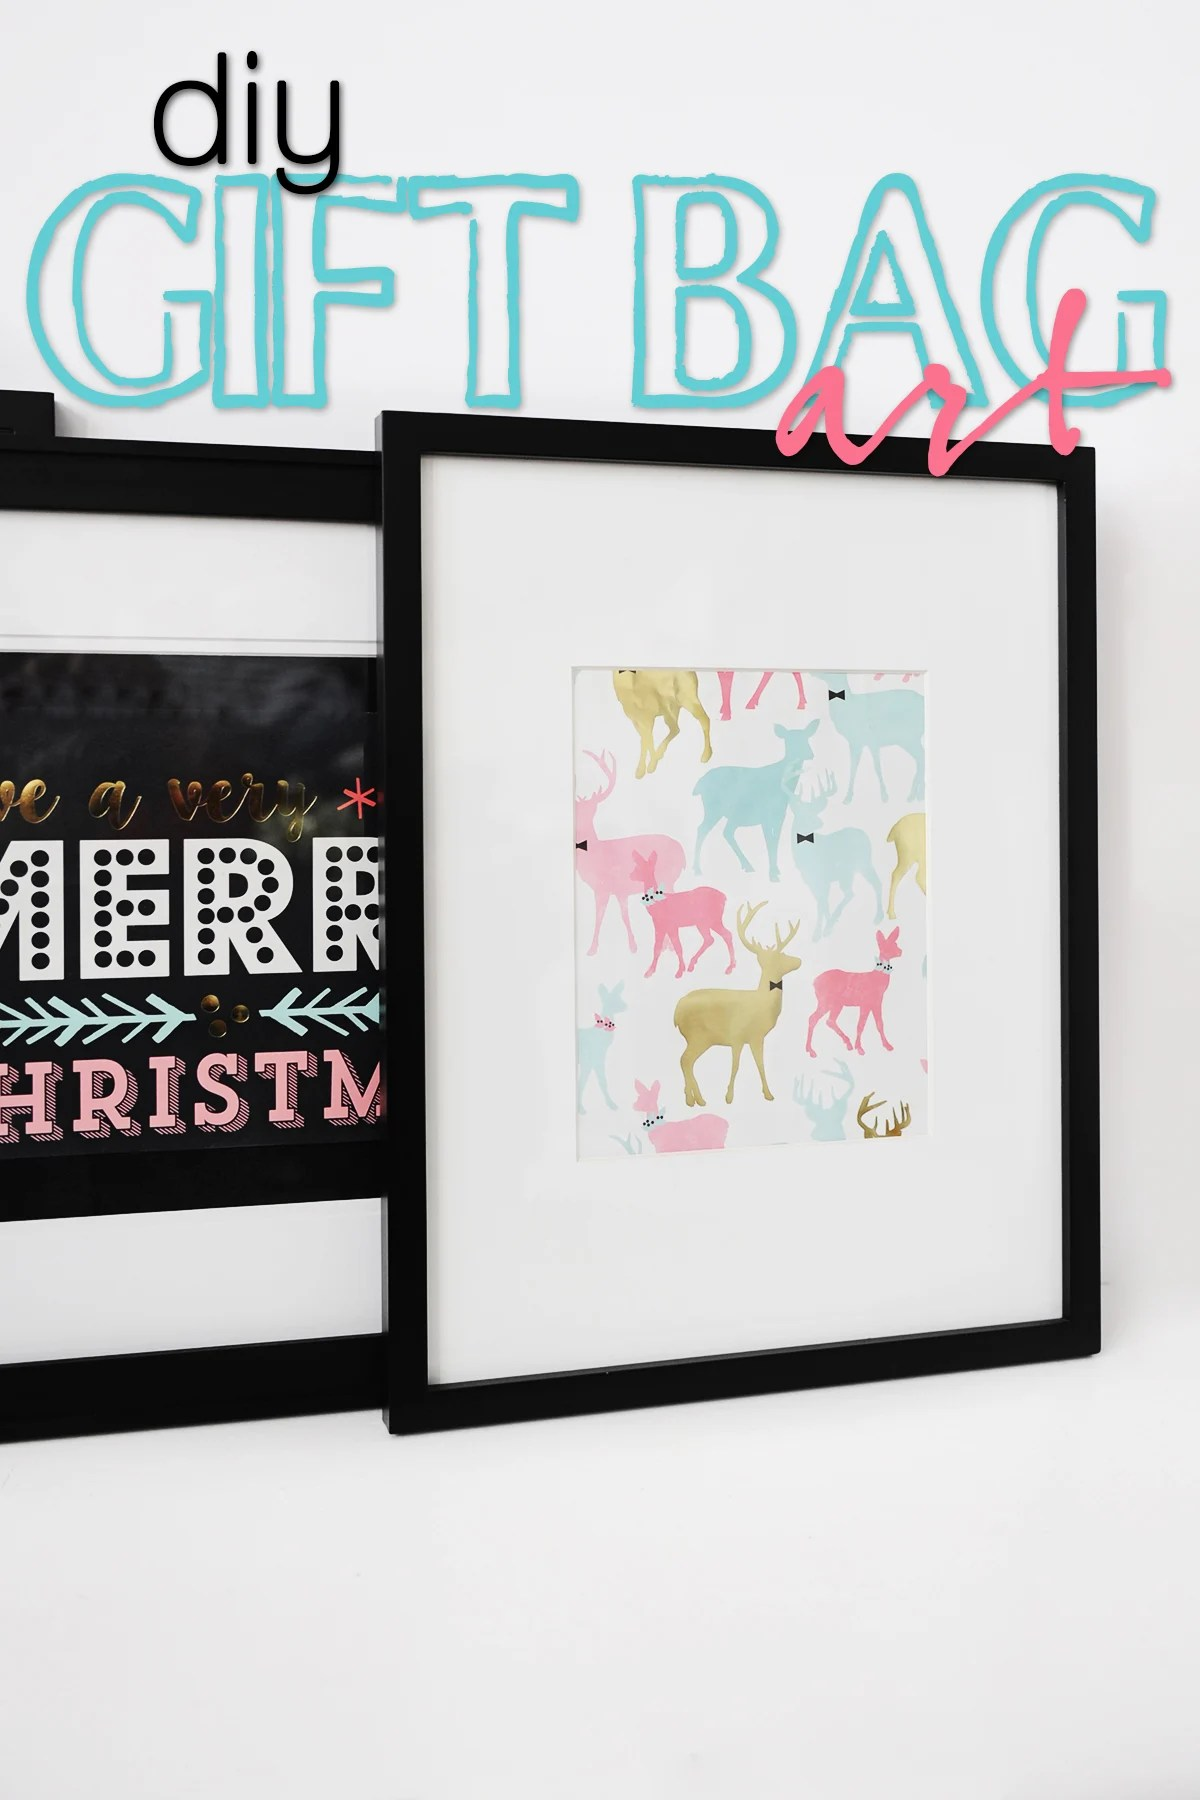 DIY Christmas Decor : Make Art from Gift Bags